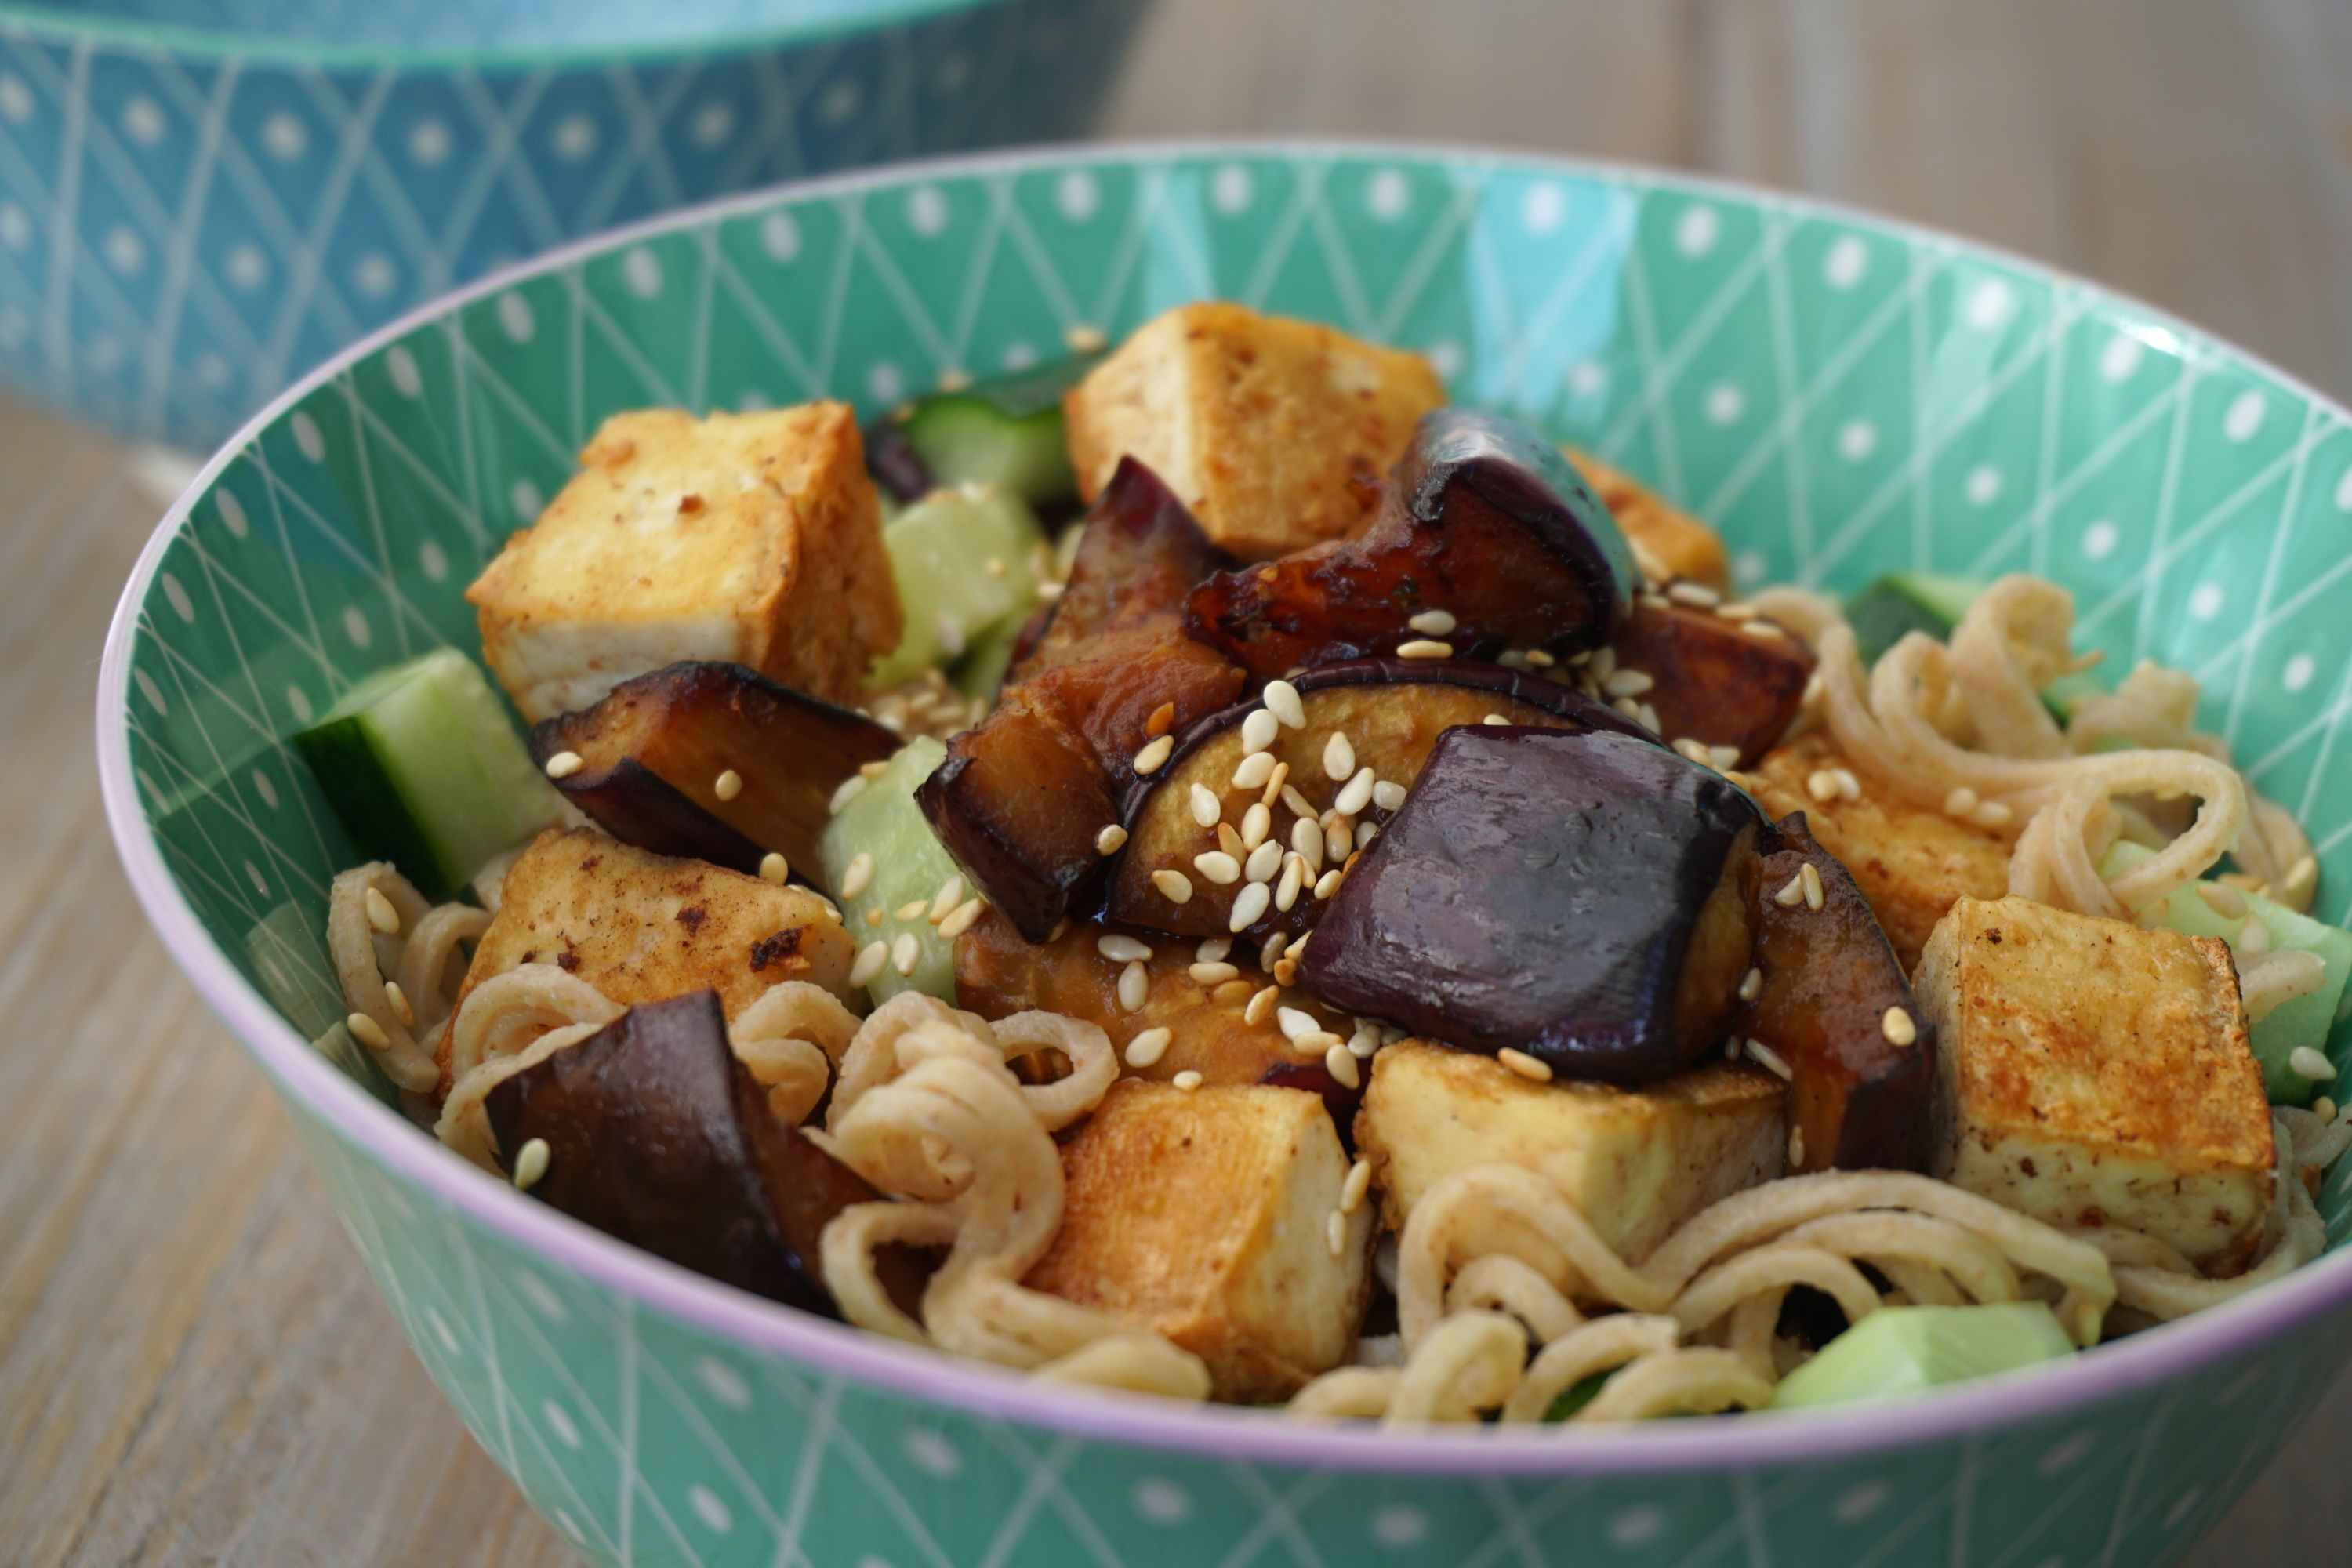 Low carb noodle salad with marinated eggplant, vegan